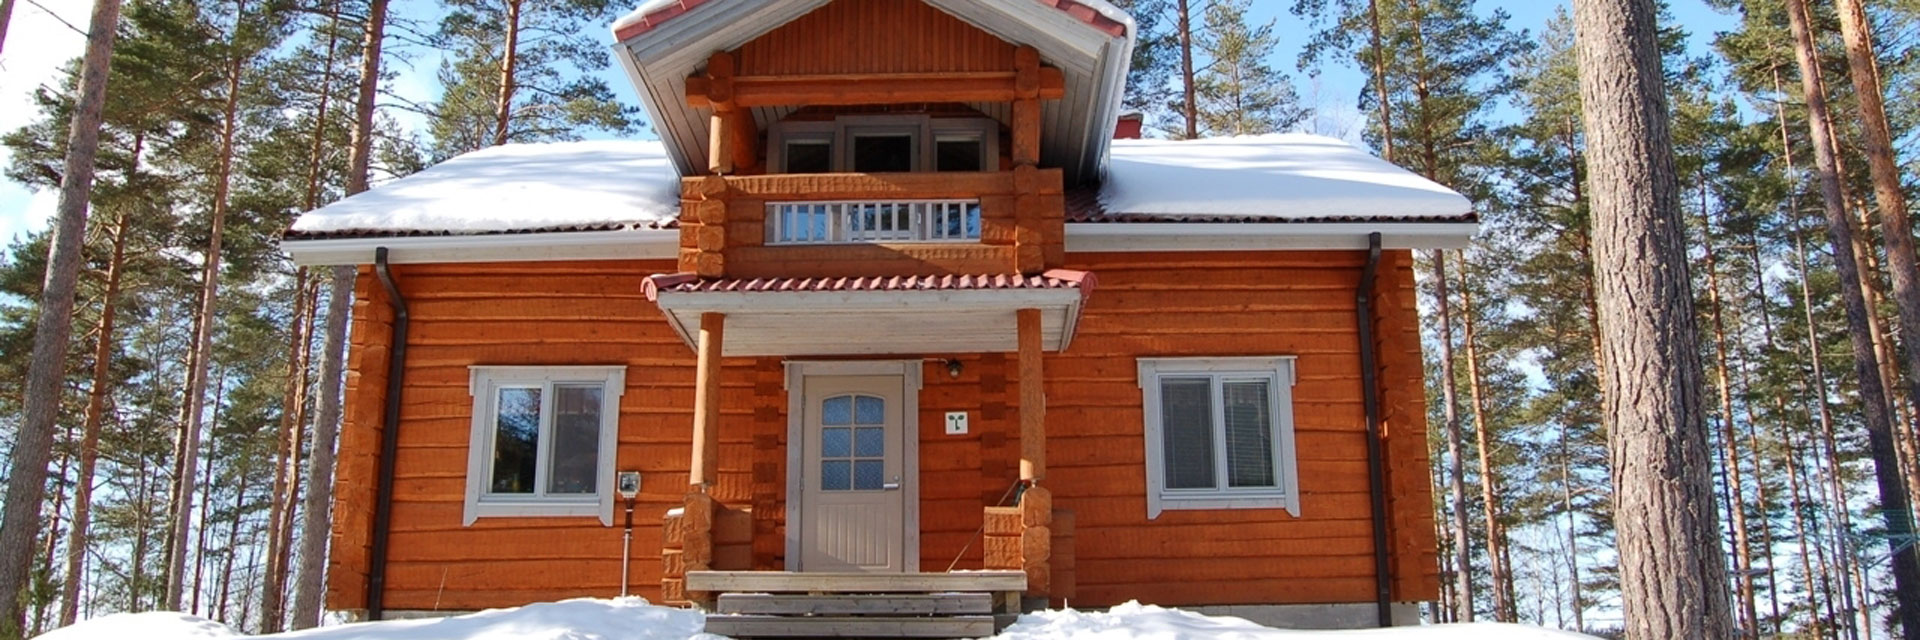 Winter Active Accommodation Holidays